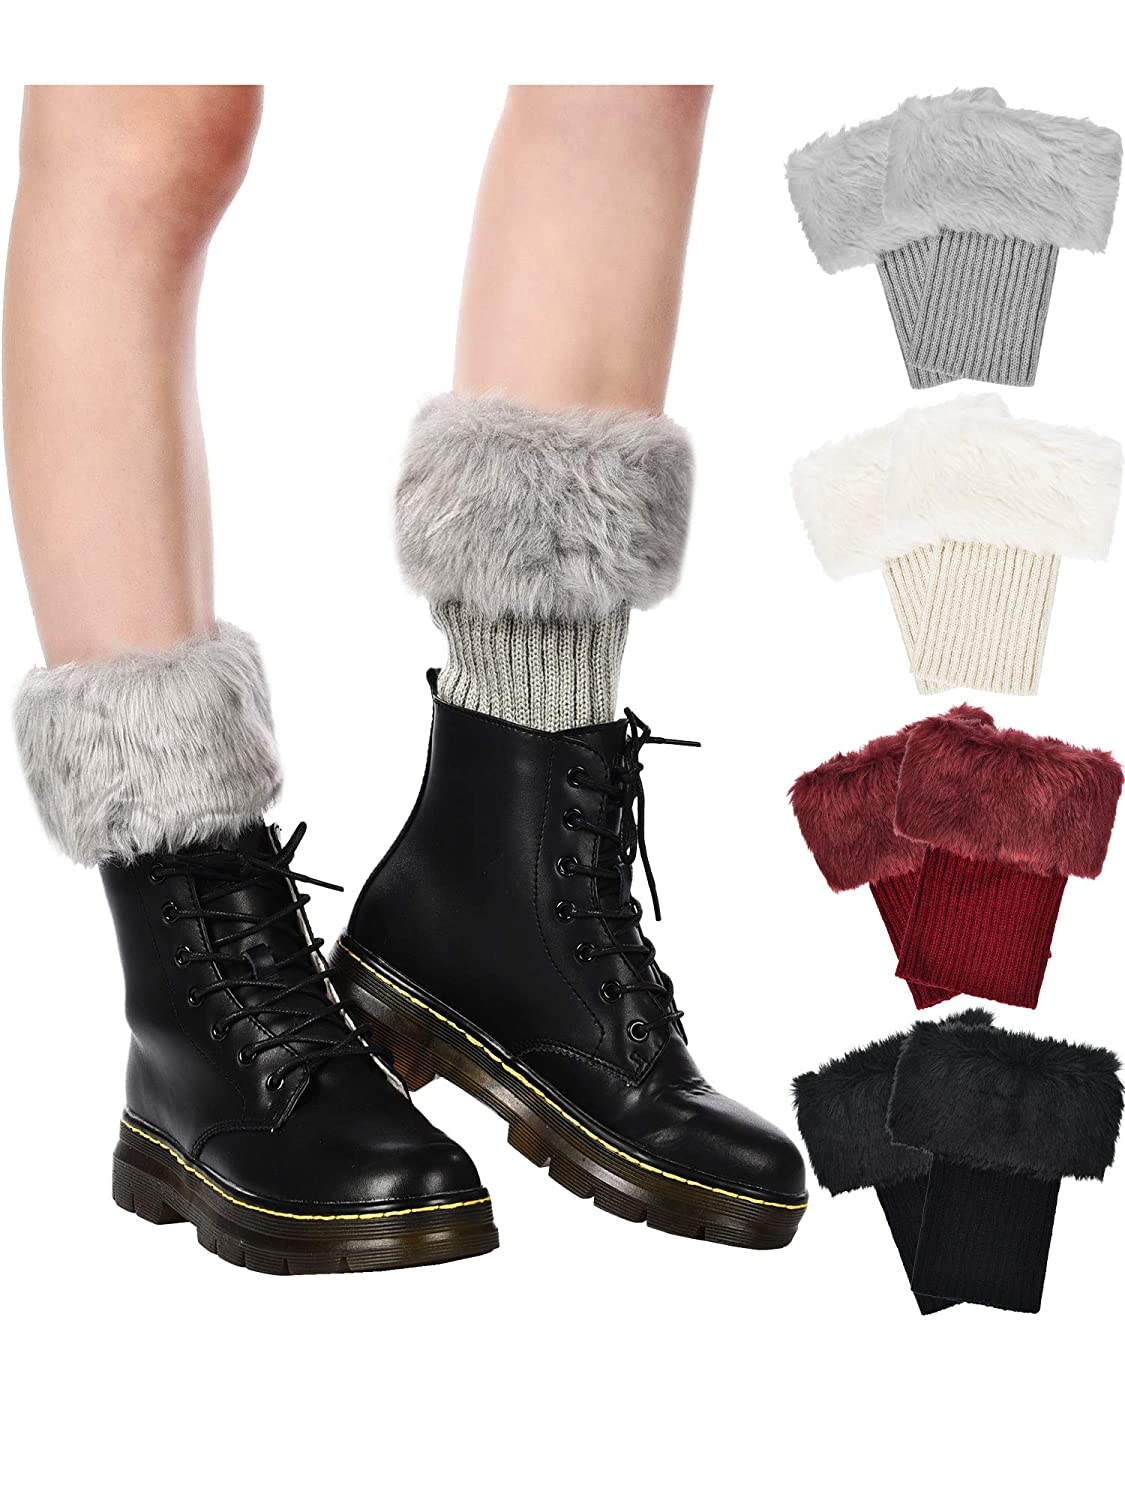 4 Pairs Women Faux Fur Boot Cuff Short Furry Leg Warmers Girls Winter Socks Knitted Boot Socks, 4 Colors